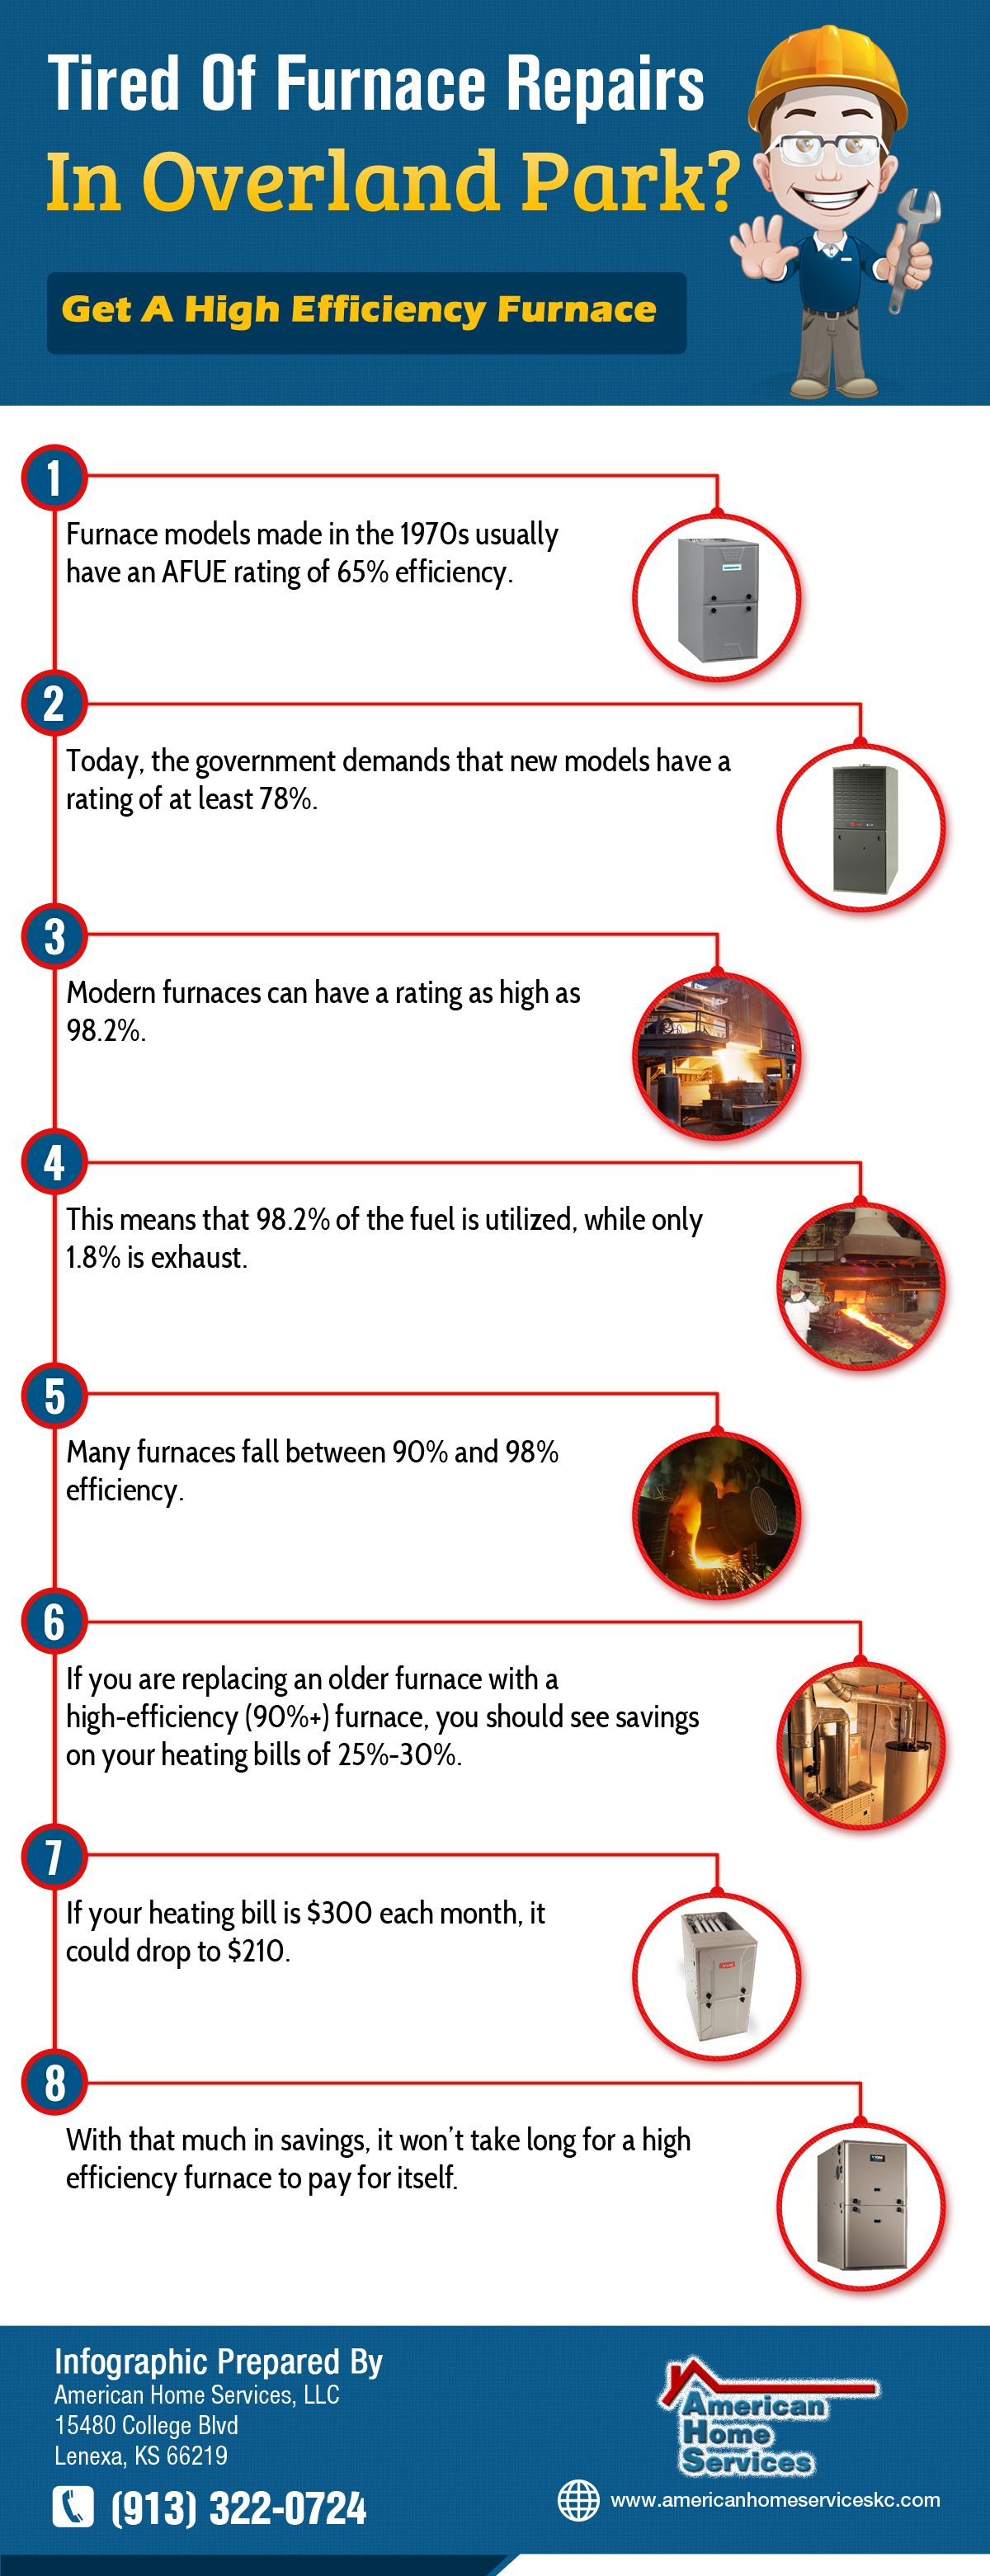 Infographic Showing How Avoiding Overland Park Furnace Repair Can